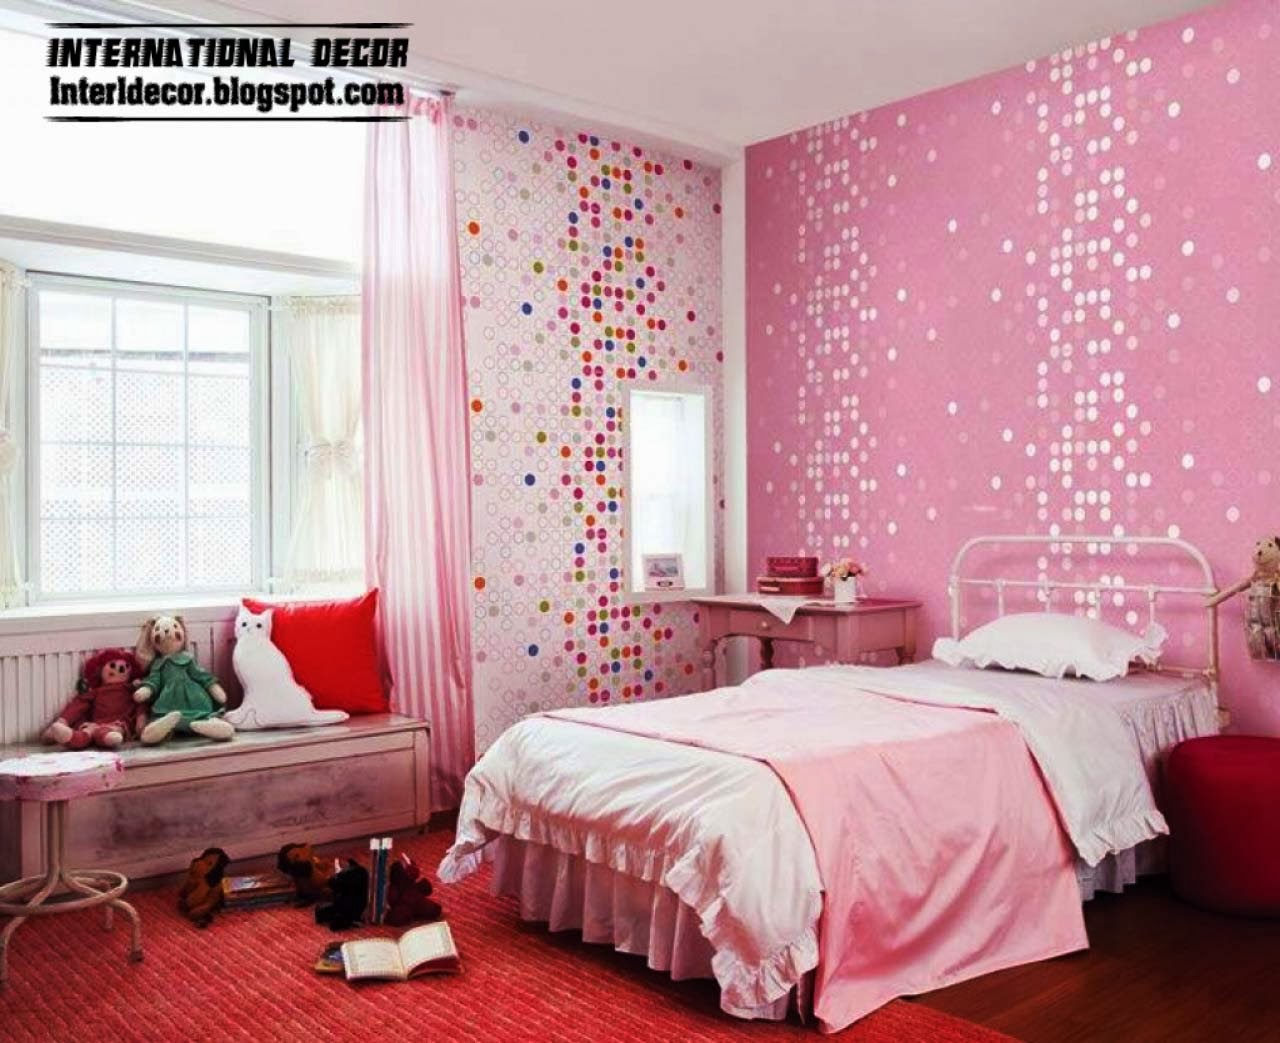 Interior Design 2014 15 Pink Girl 39 S Bedroom 2014